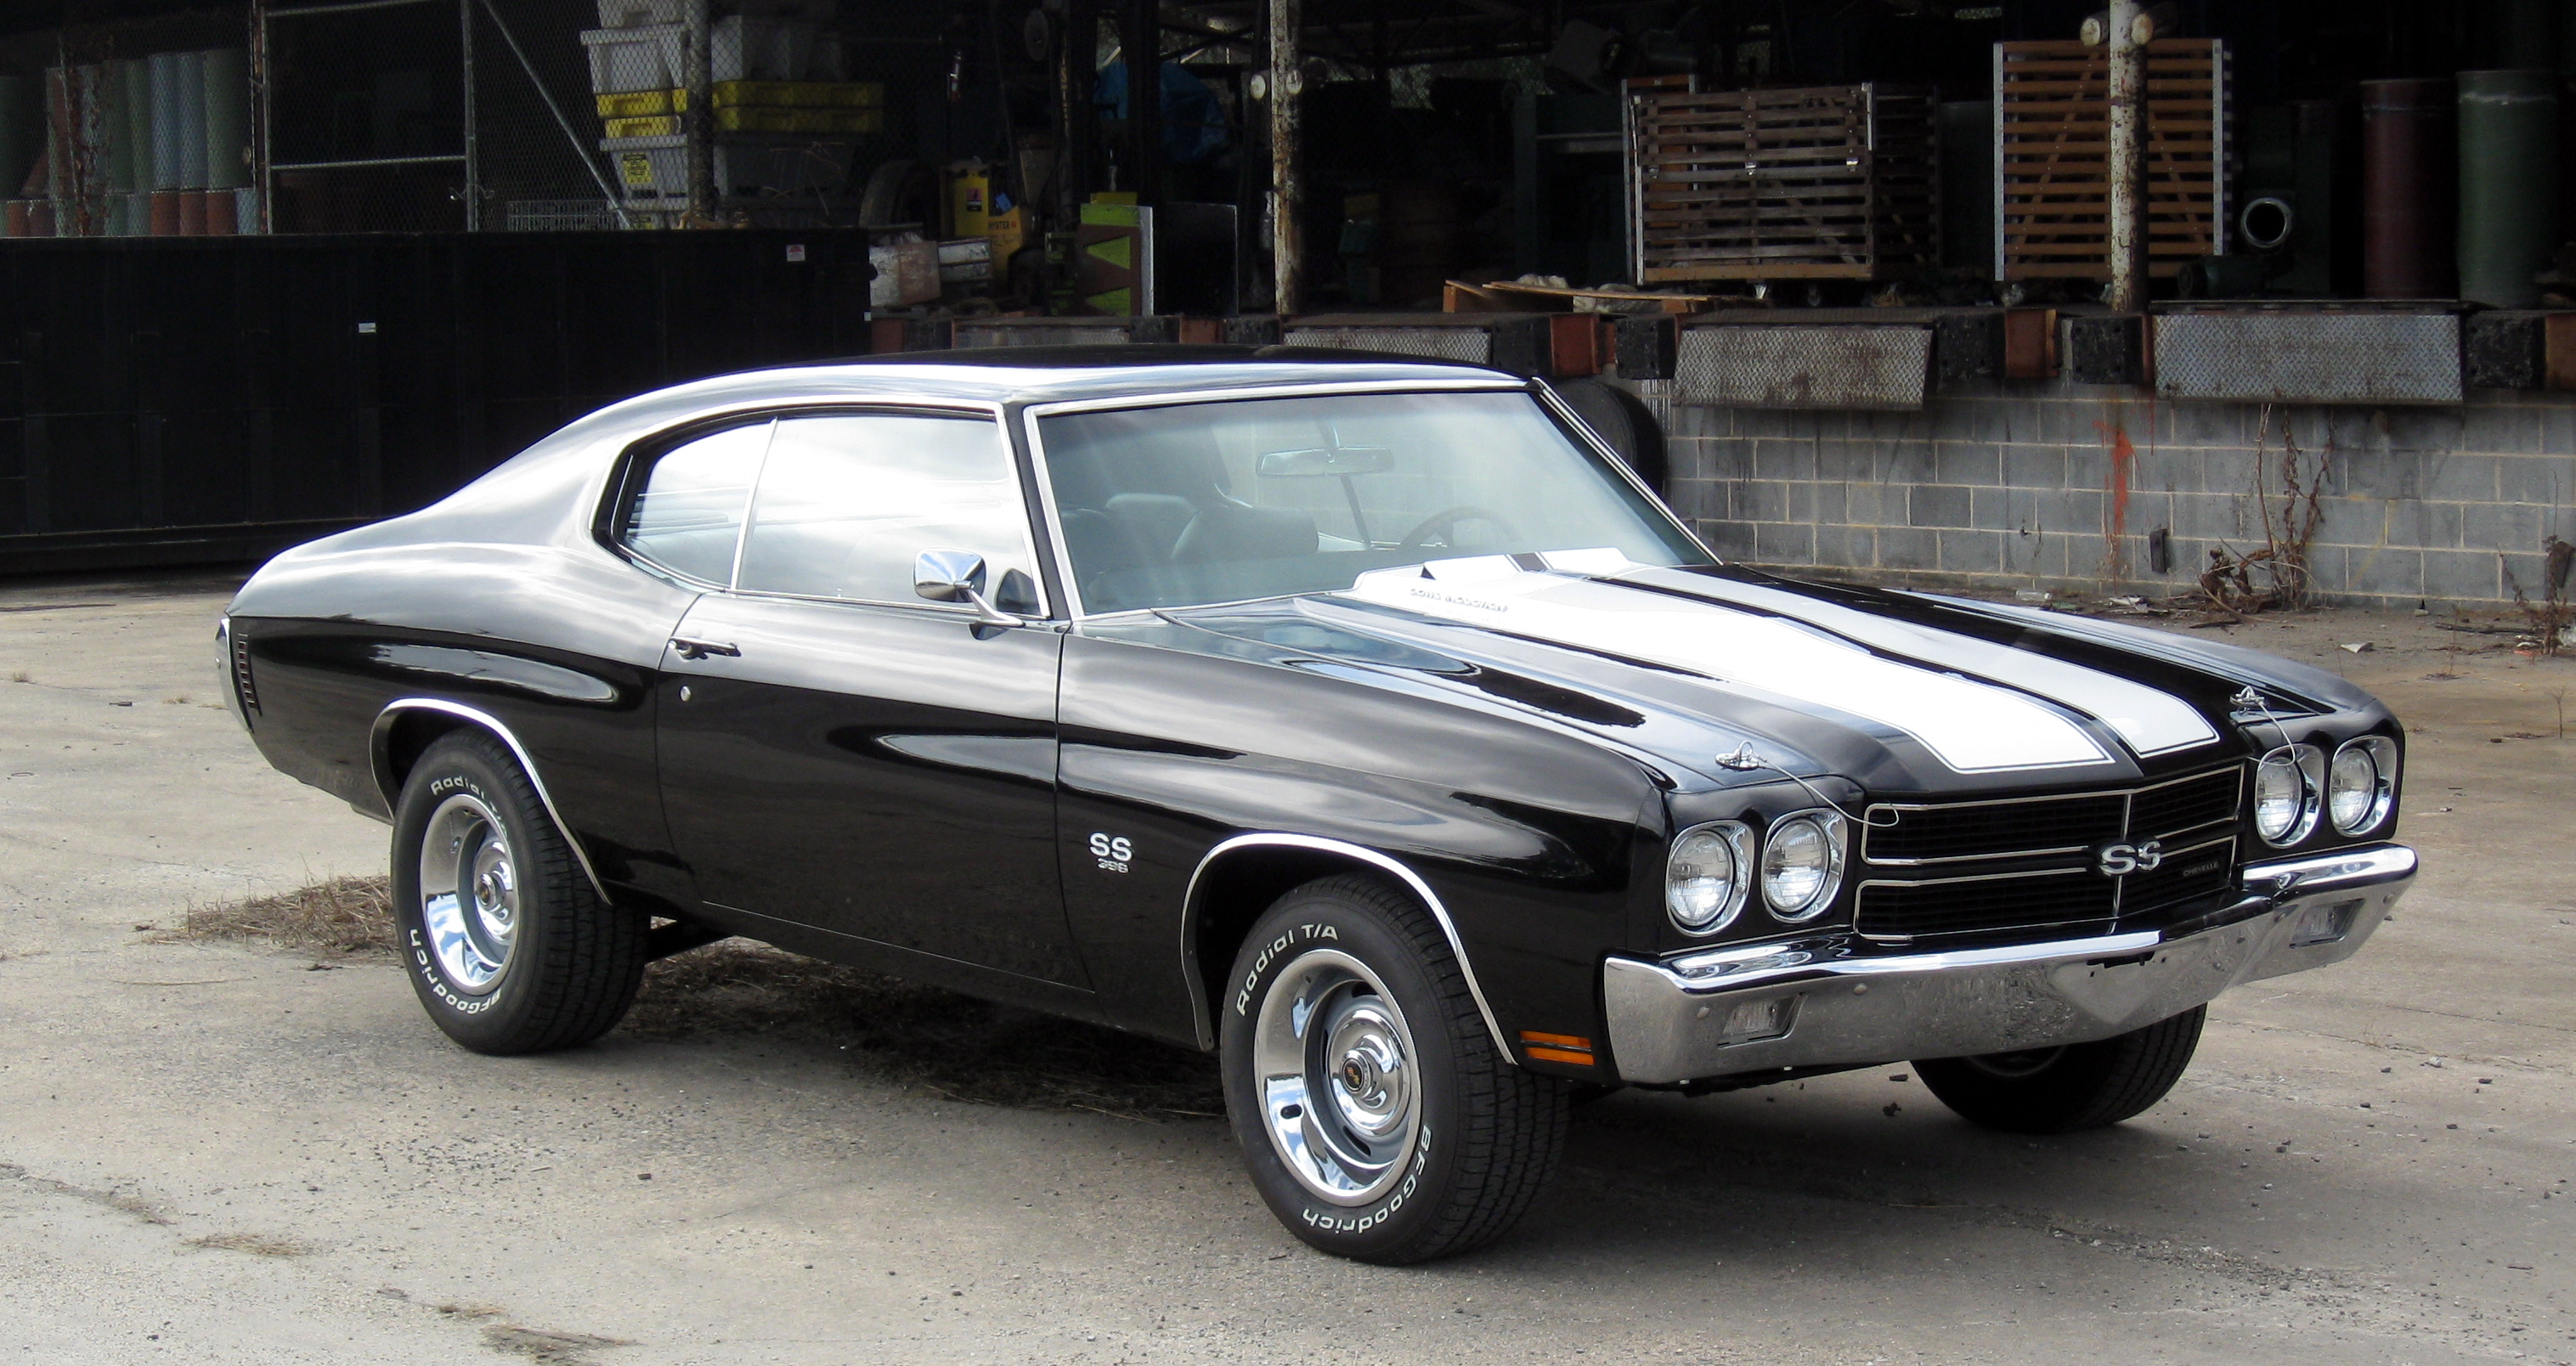 1970 Chevelle Convertible Wiring Diagram Download Diagrams Free Gm 396 Engine For Sale Image User 68 Alternator